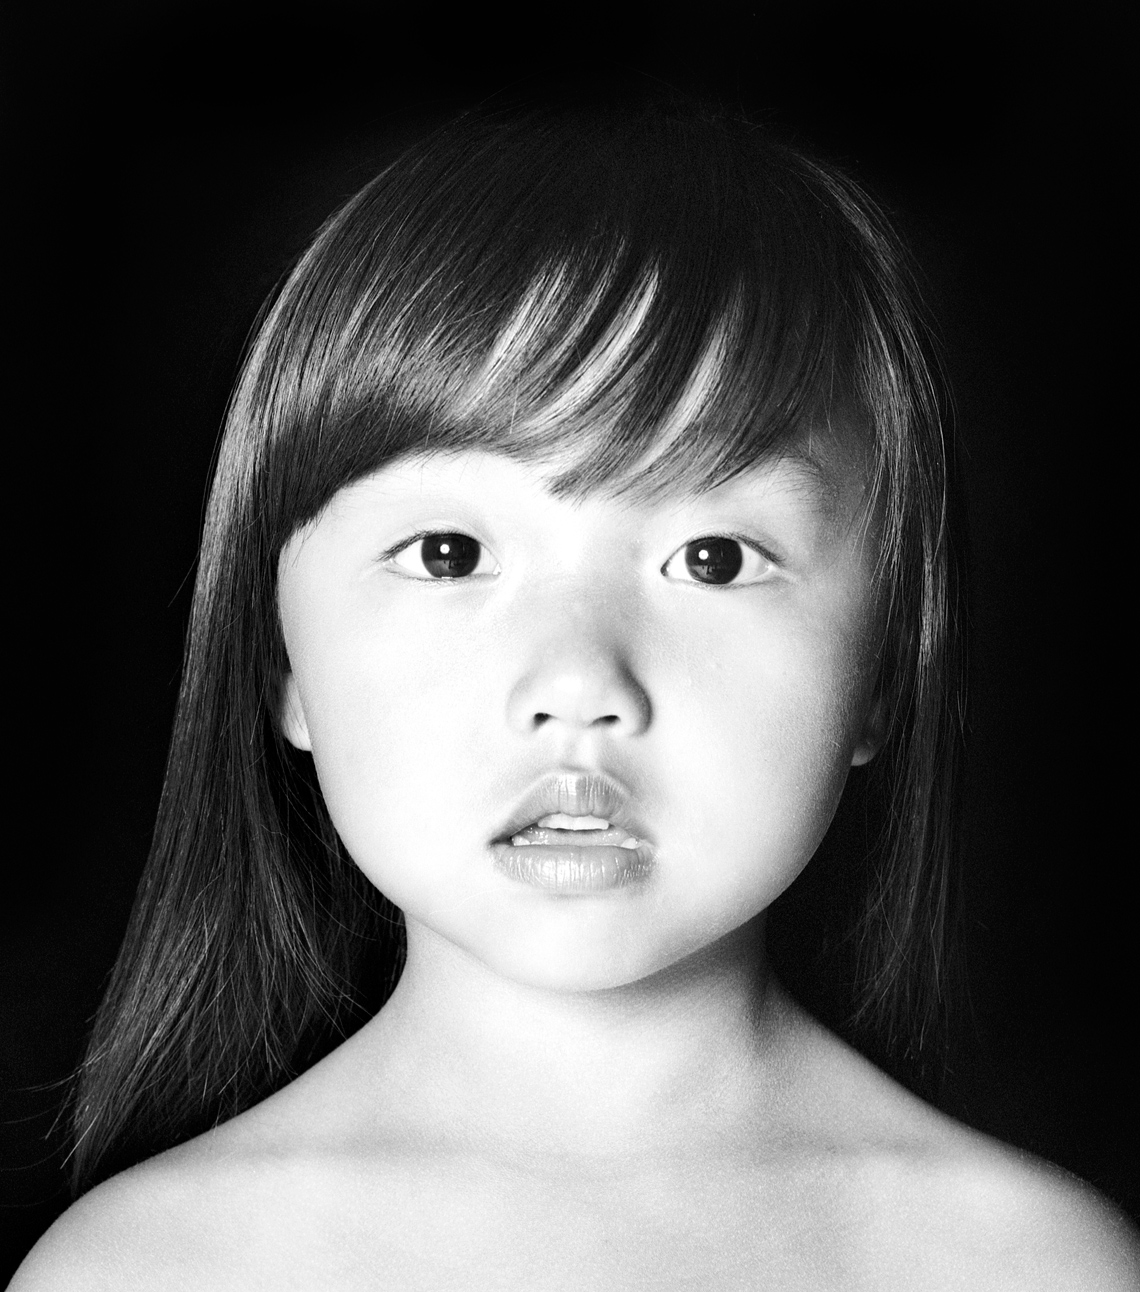 Young Asian girl close up portrait in black and white